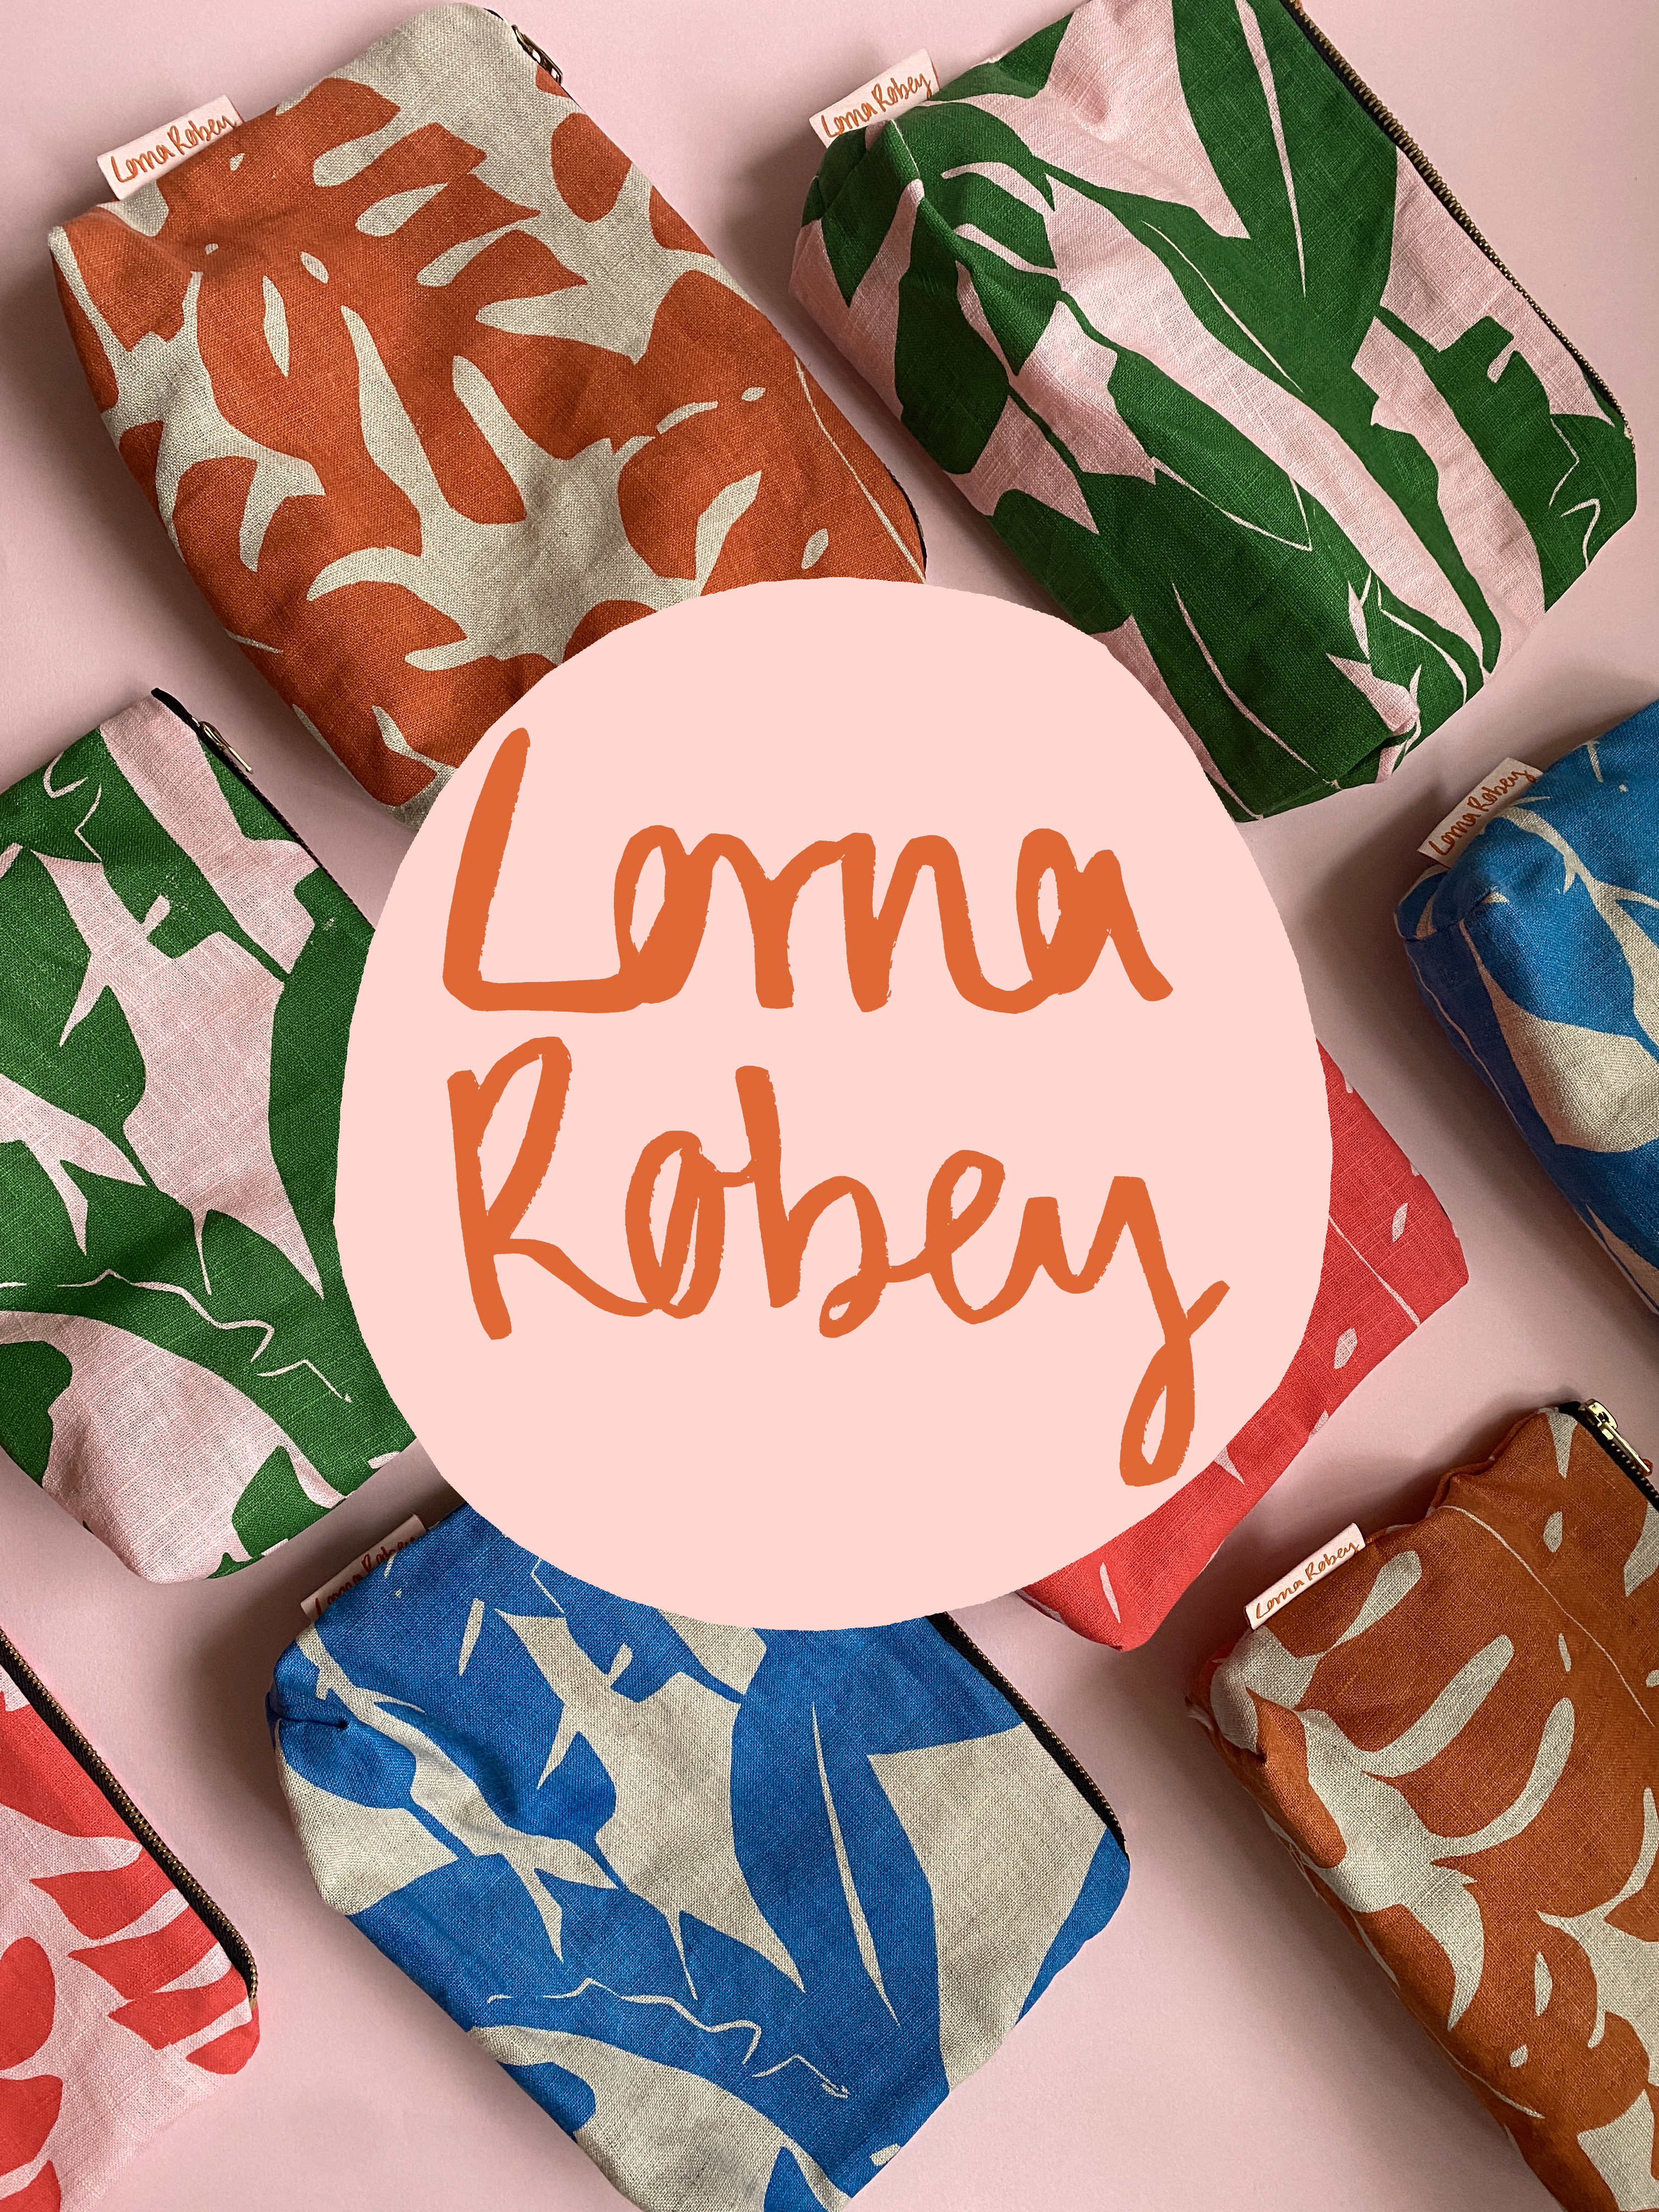 Lorna Robey